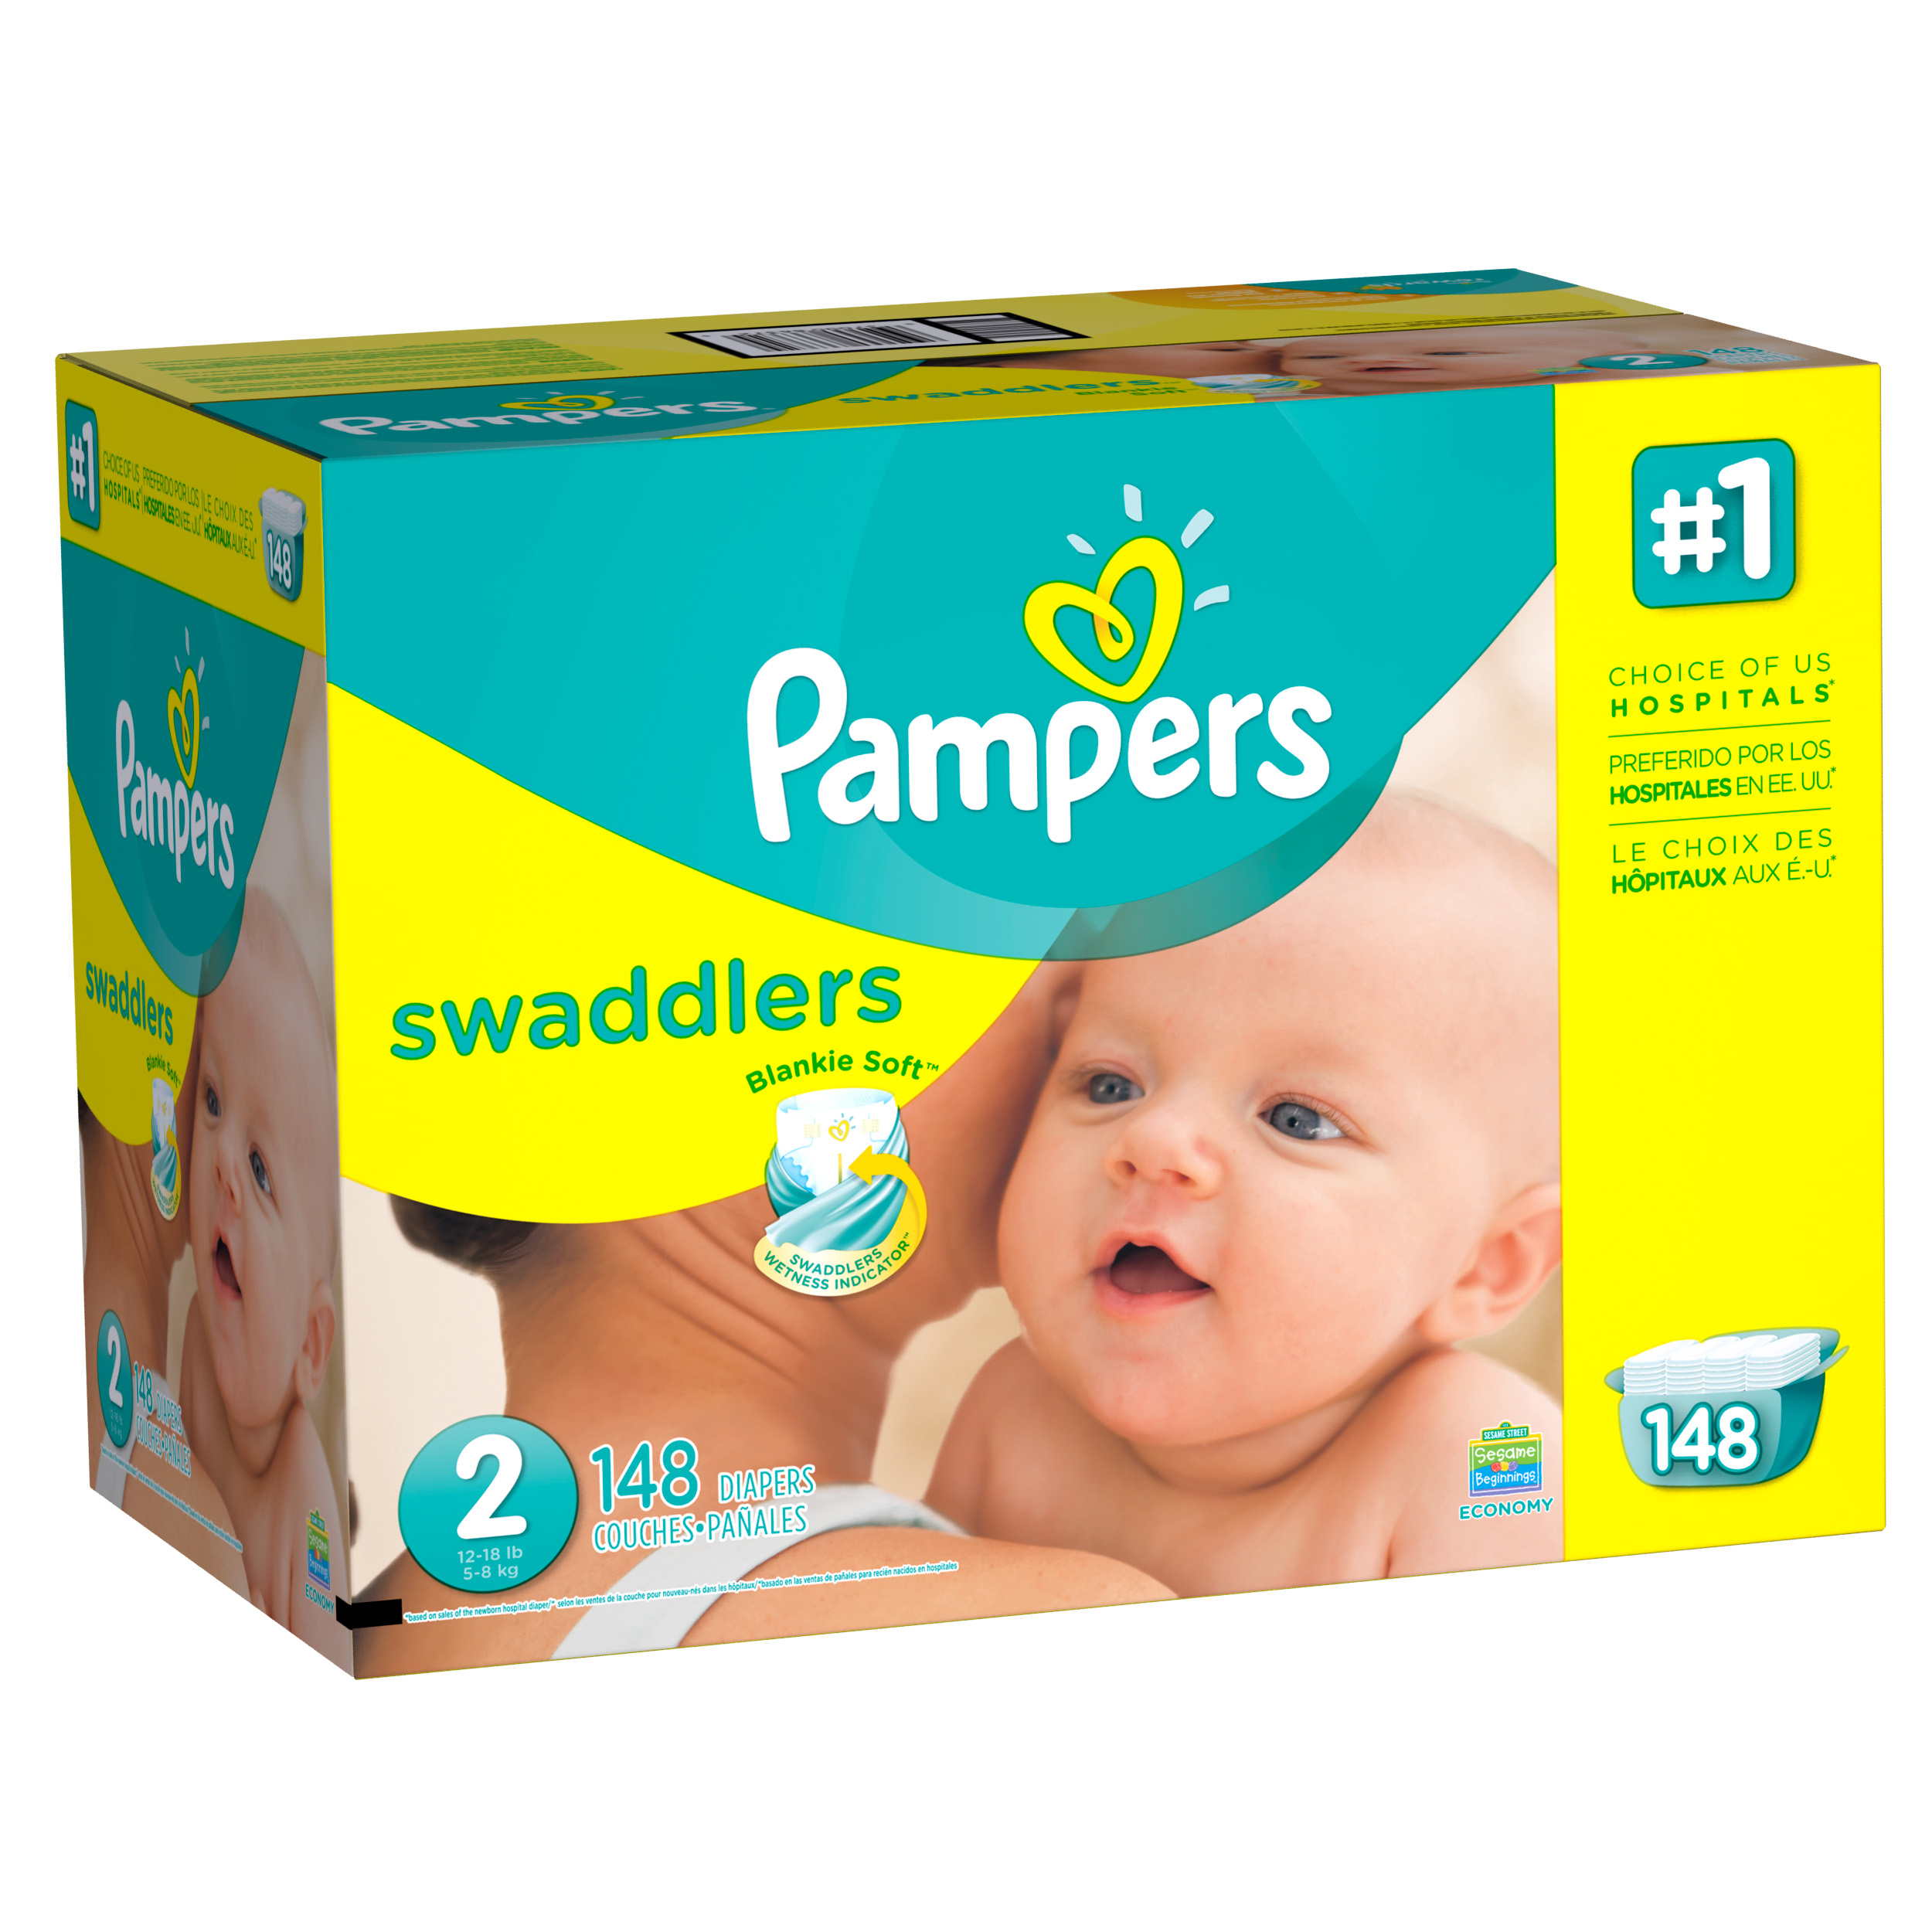 Pampers Swaddlers Diapers, Size 2, 148 Diapers